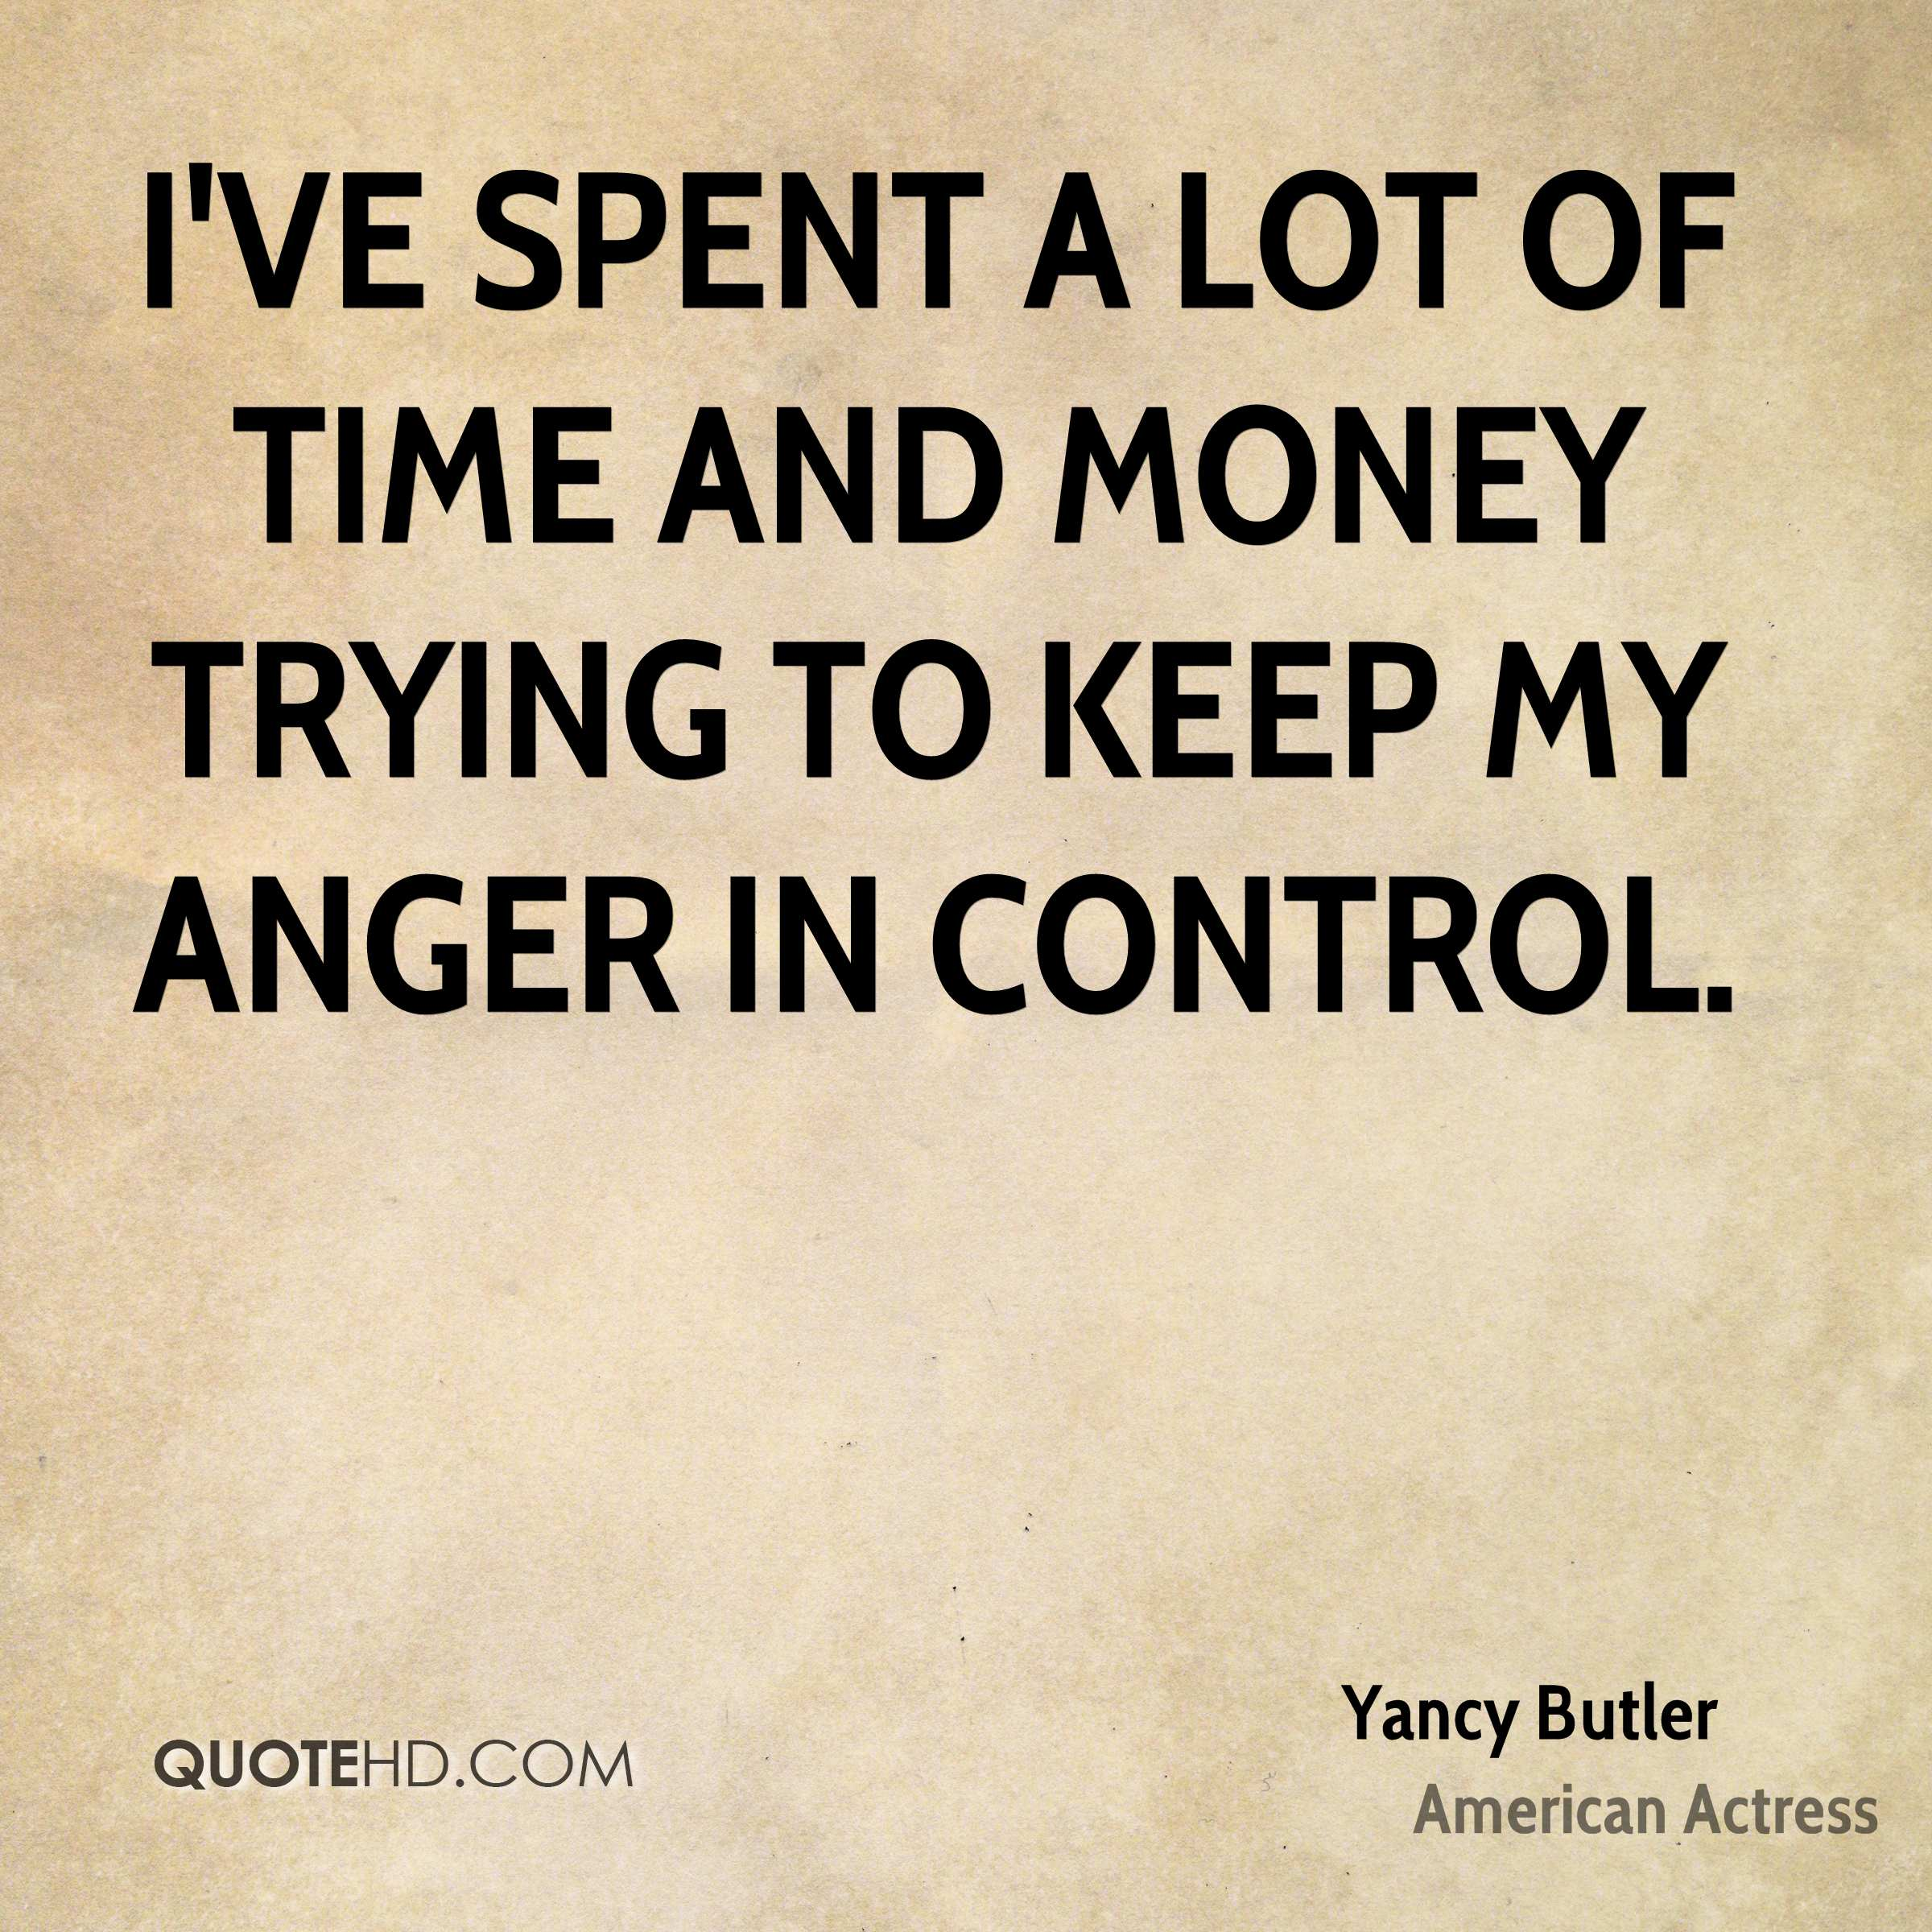 I've spent a lot of time and money trying to keep my anger in control.